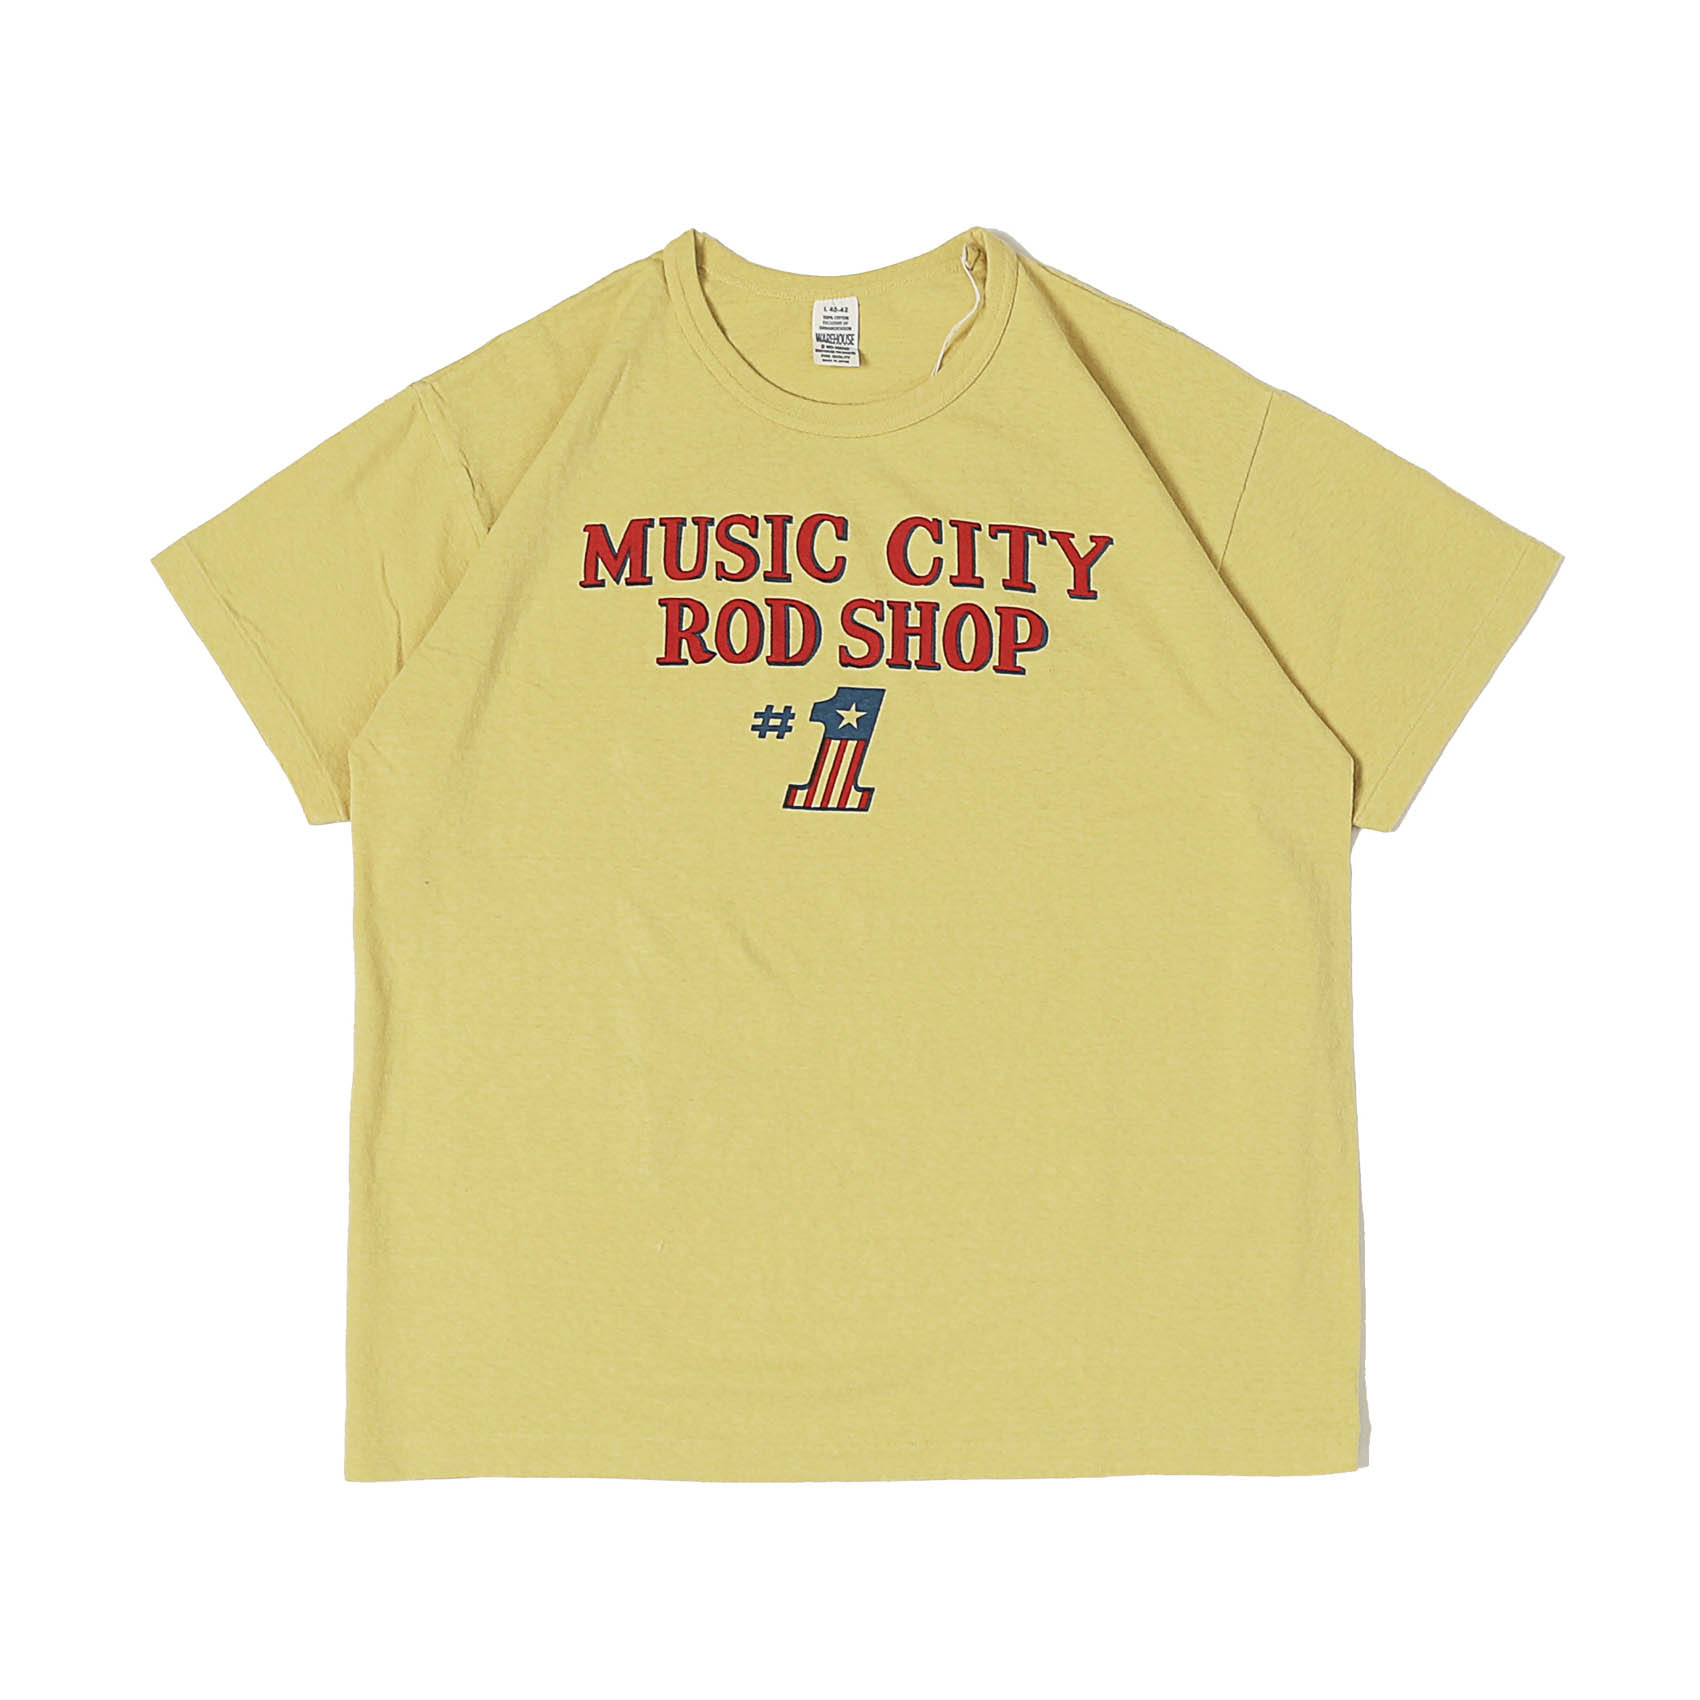 LOT 4604 MUSIC CITY - YELLOW